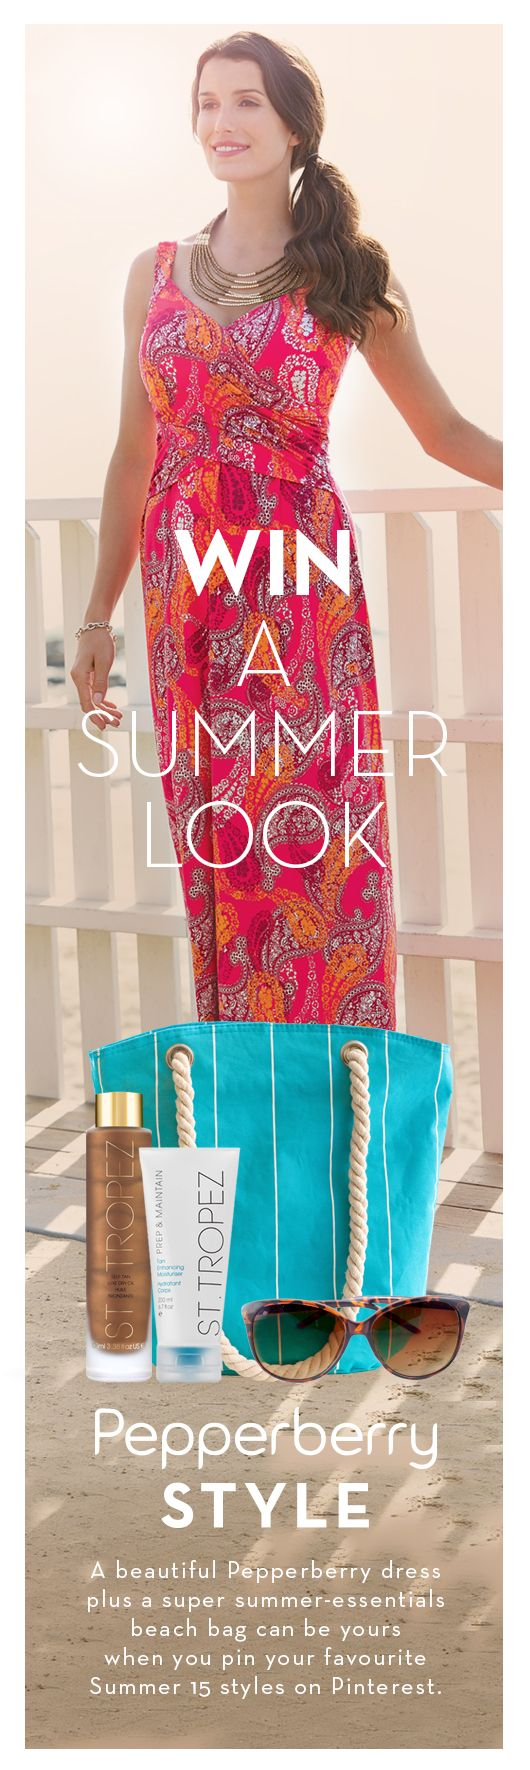 Win A Summer Look - Pepperberry Style